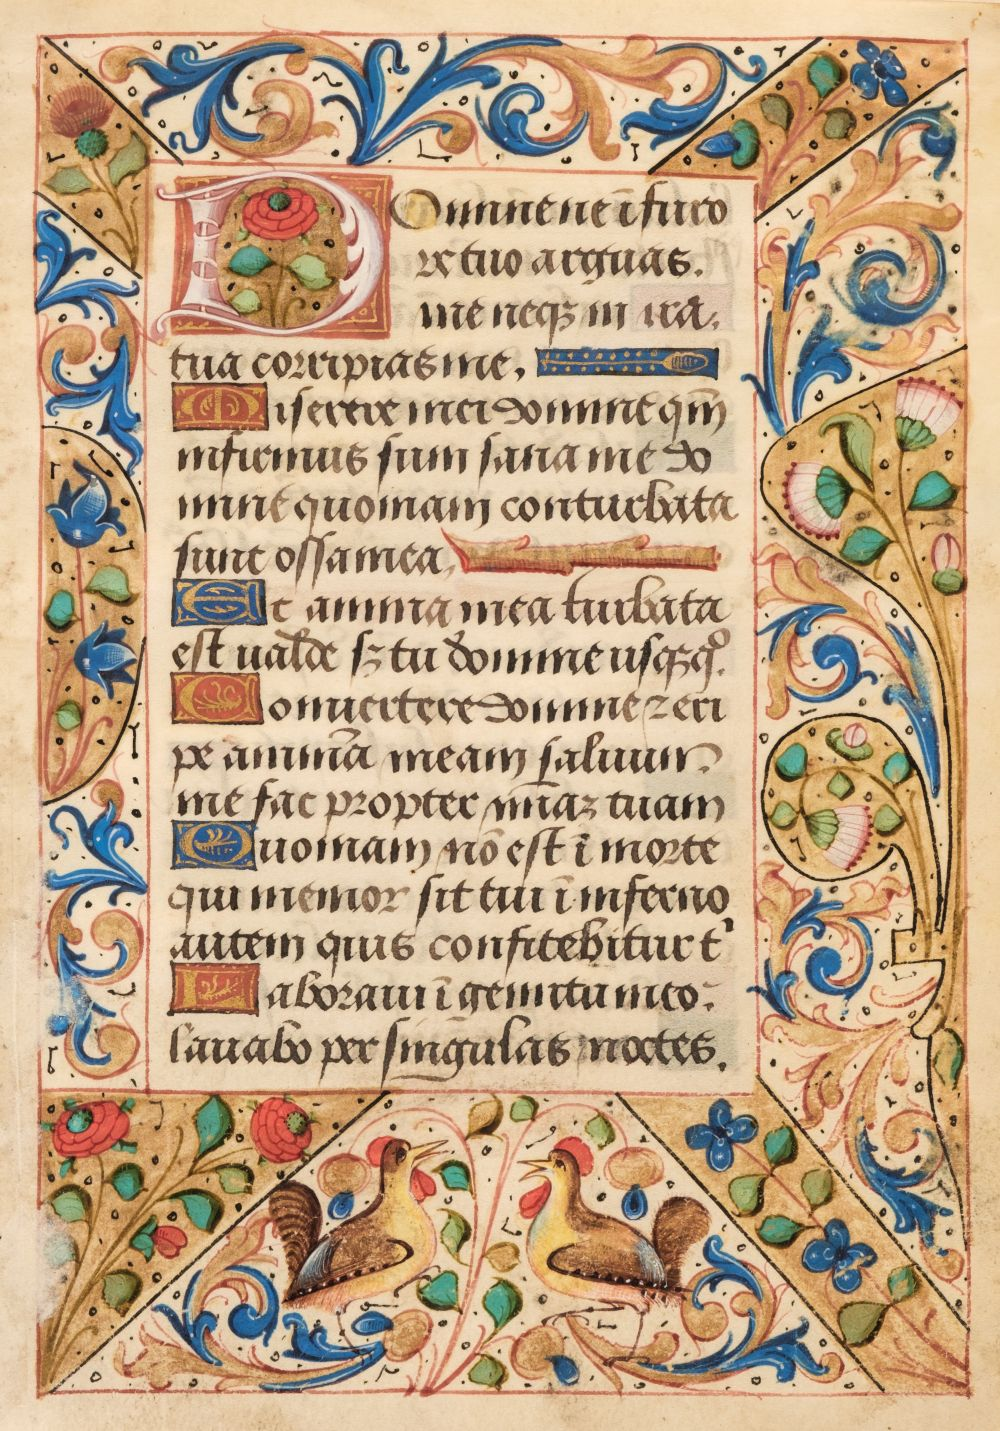 * Illuminated Leaf. Illuminated leaf from a Book of Hours, Northern France, circa 1500